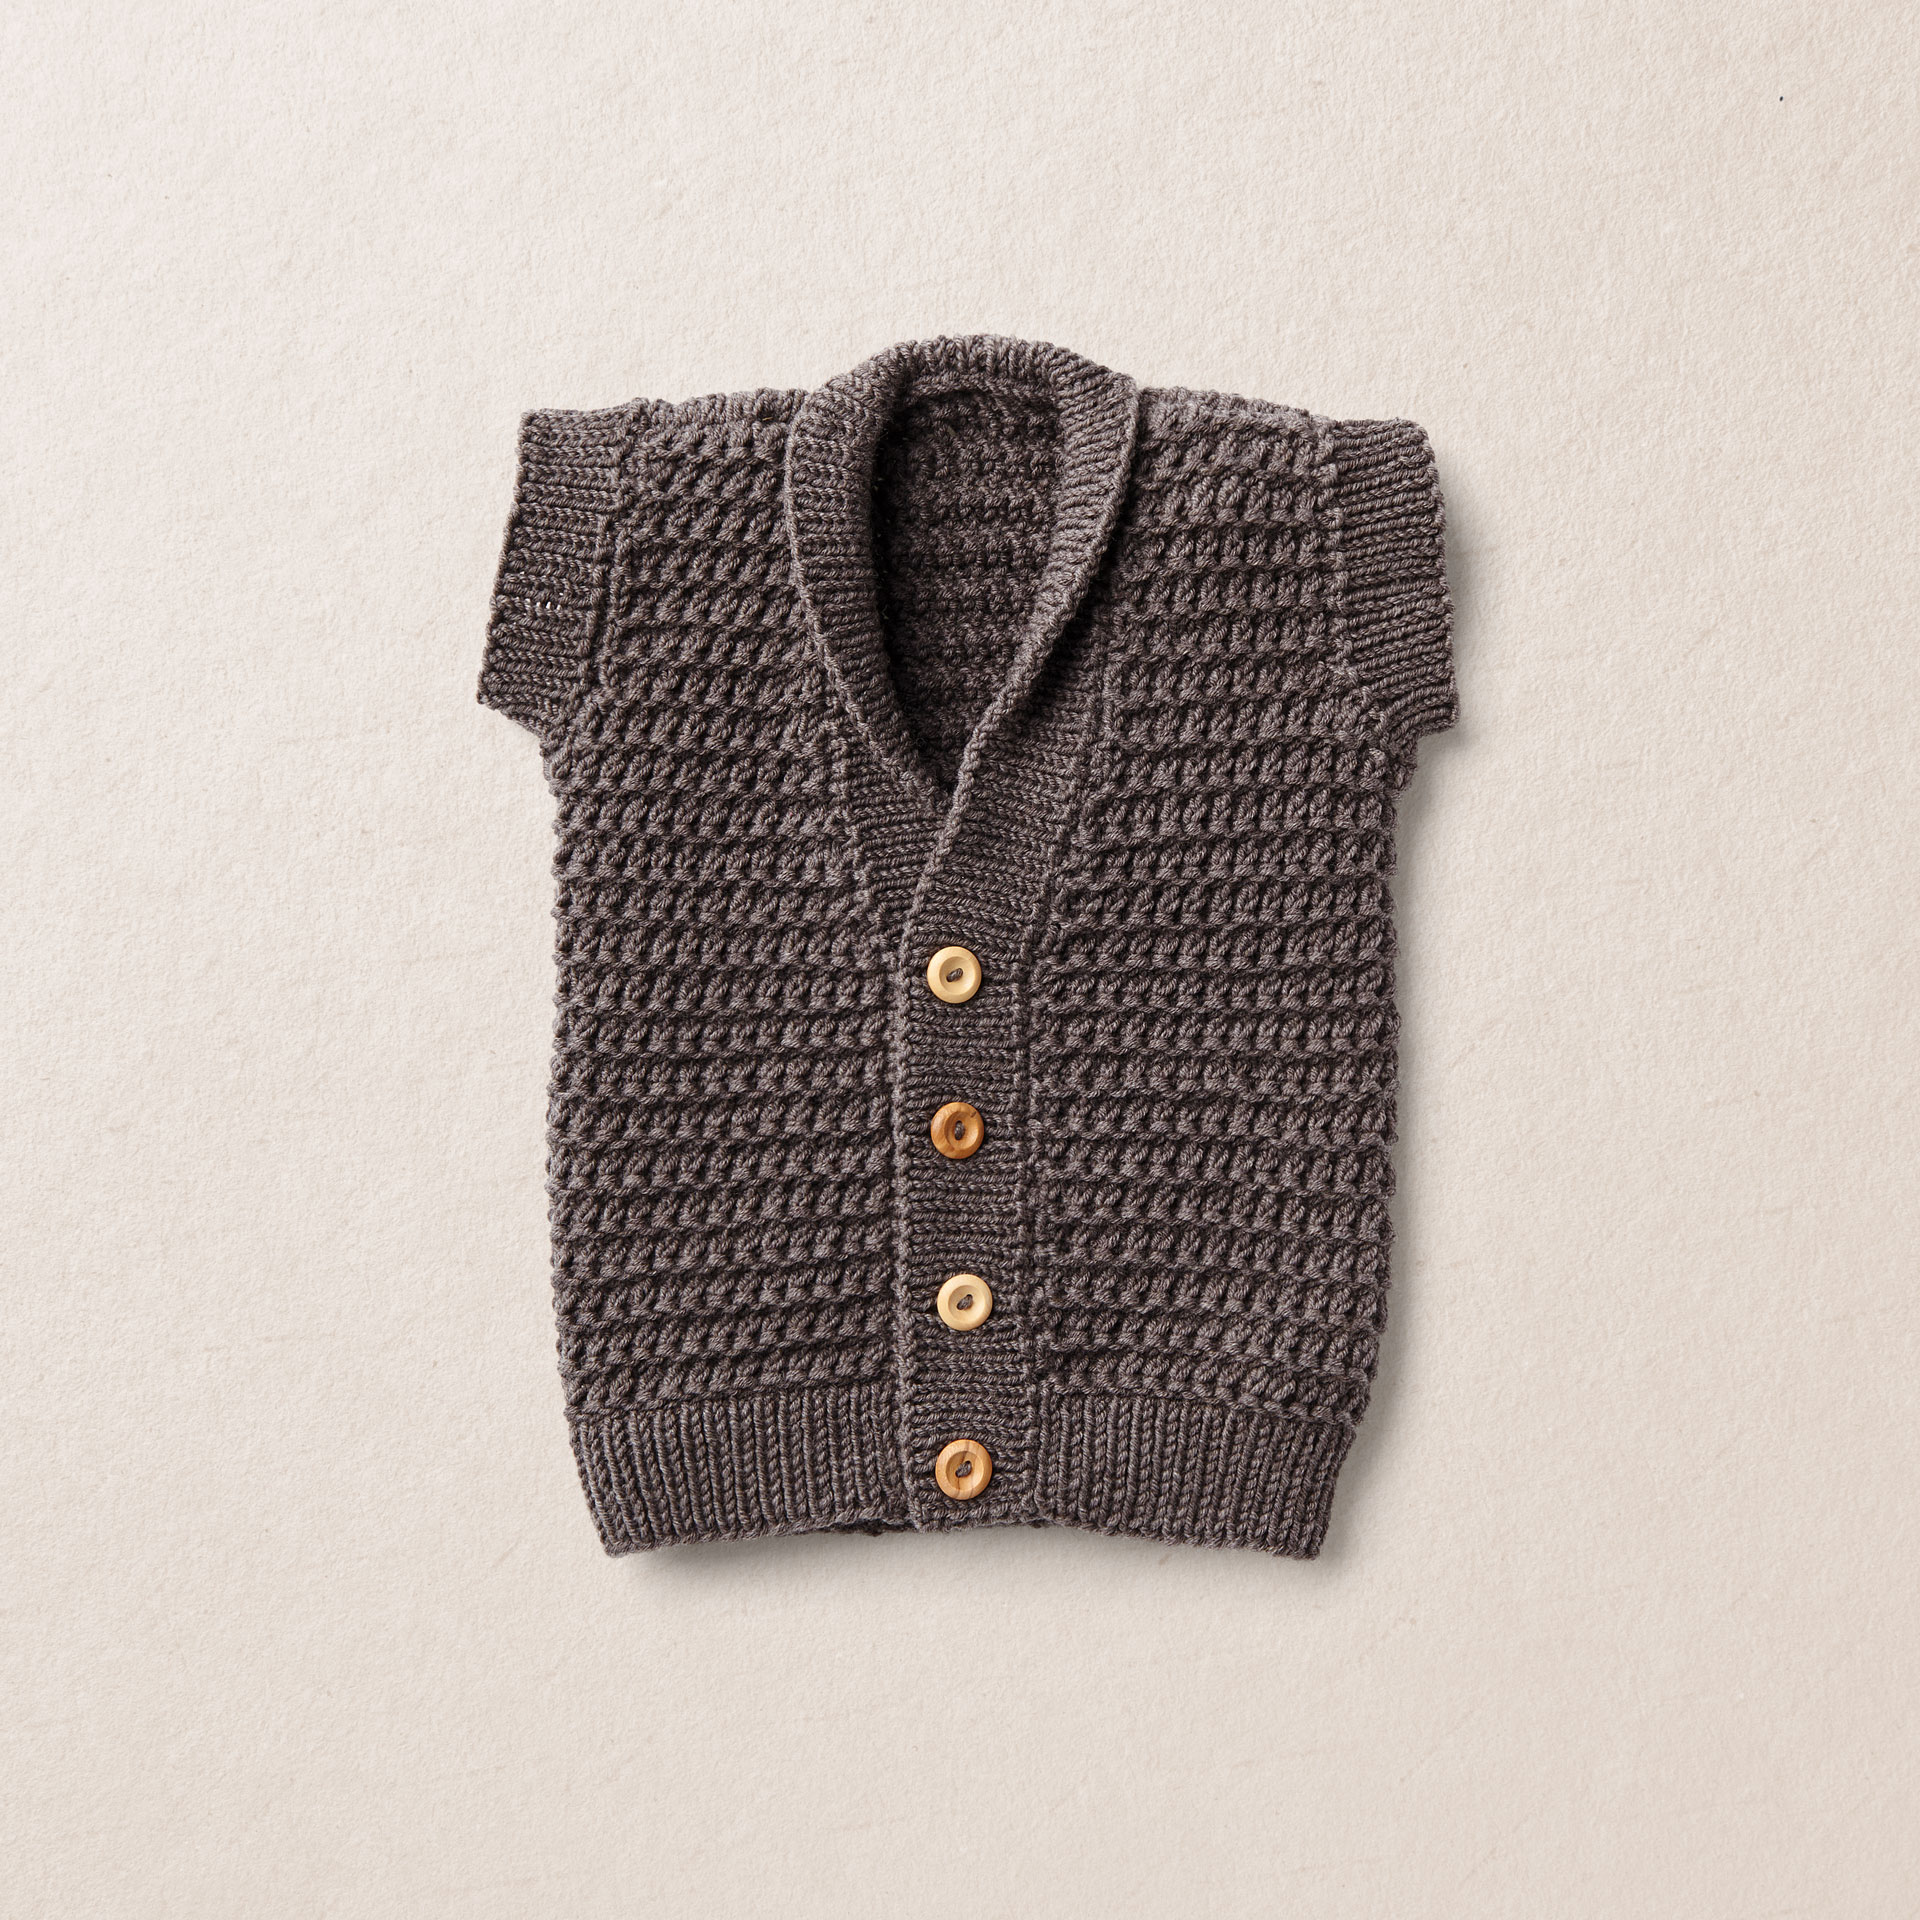 Baby knit vest, Van Beren merino wool baby knit vest, dark brown